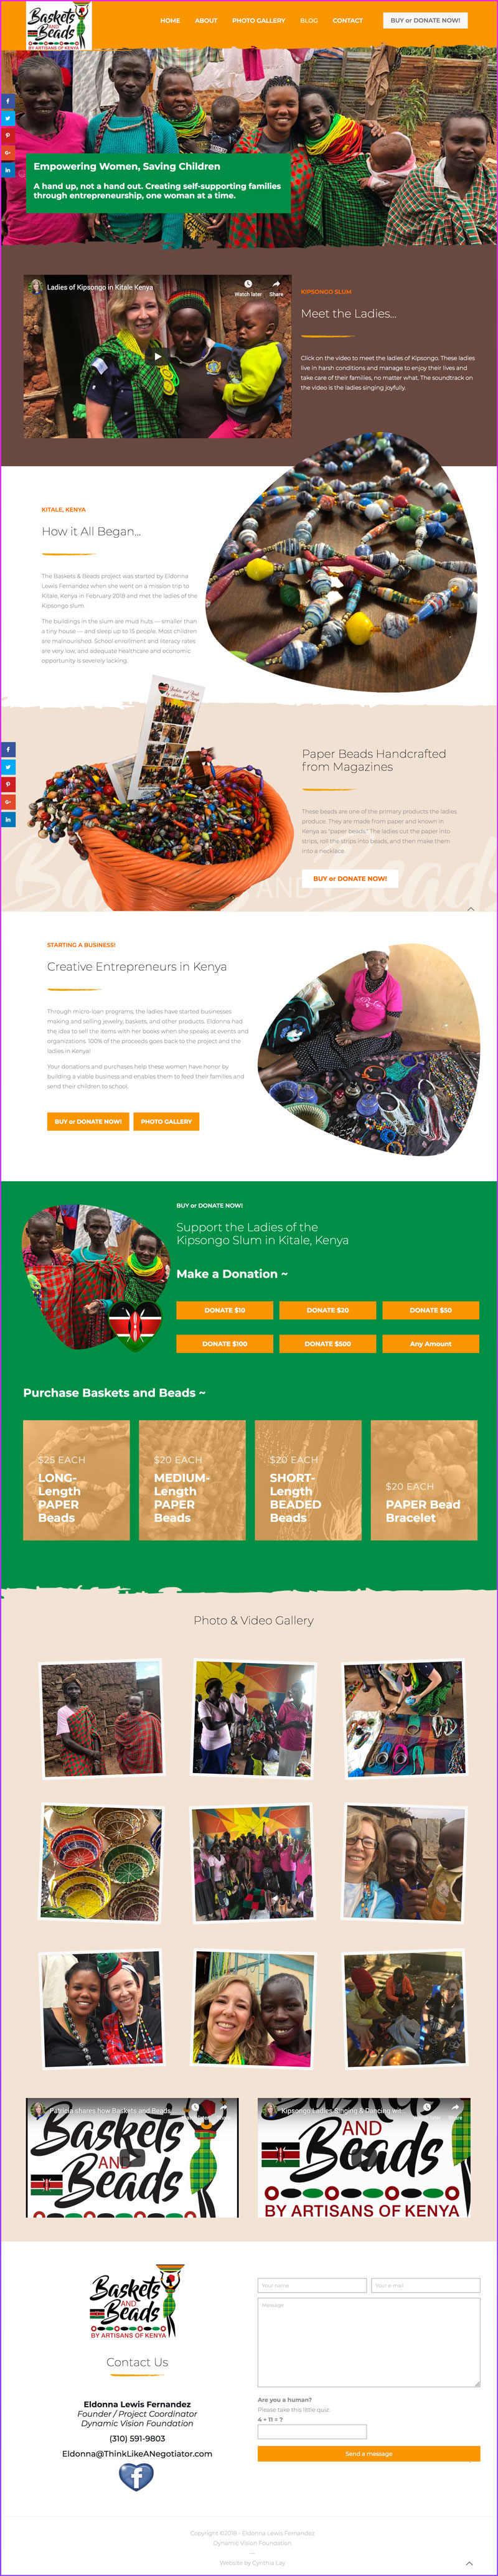 Baskets & Beads Kenya - Non-Profit Organization Website